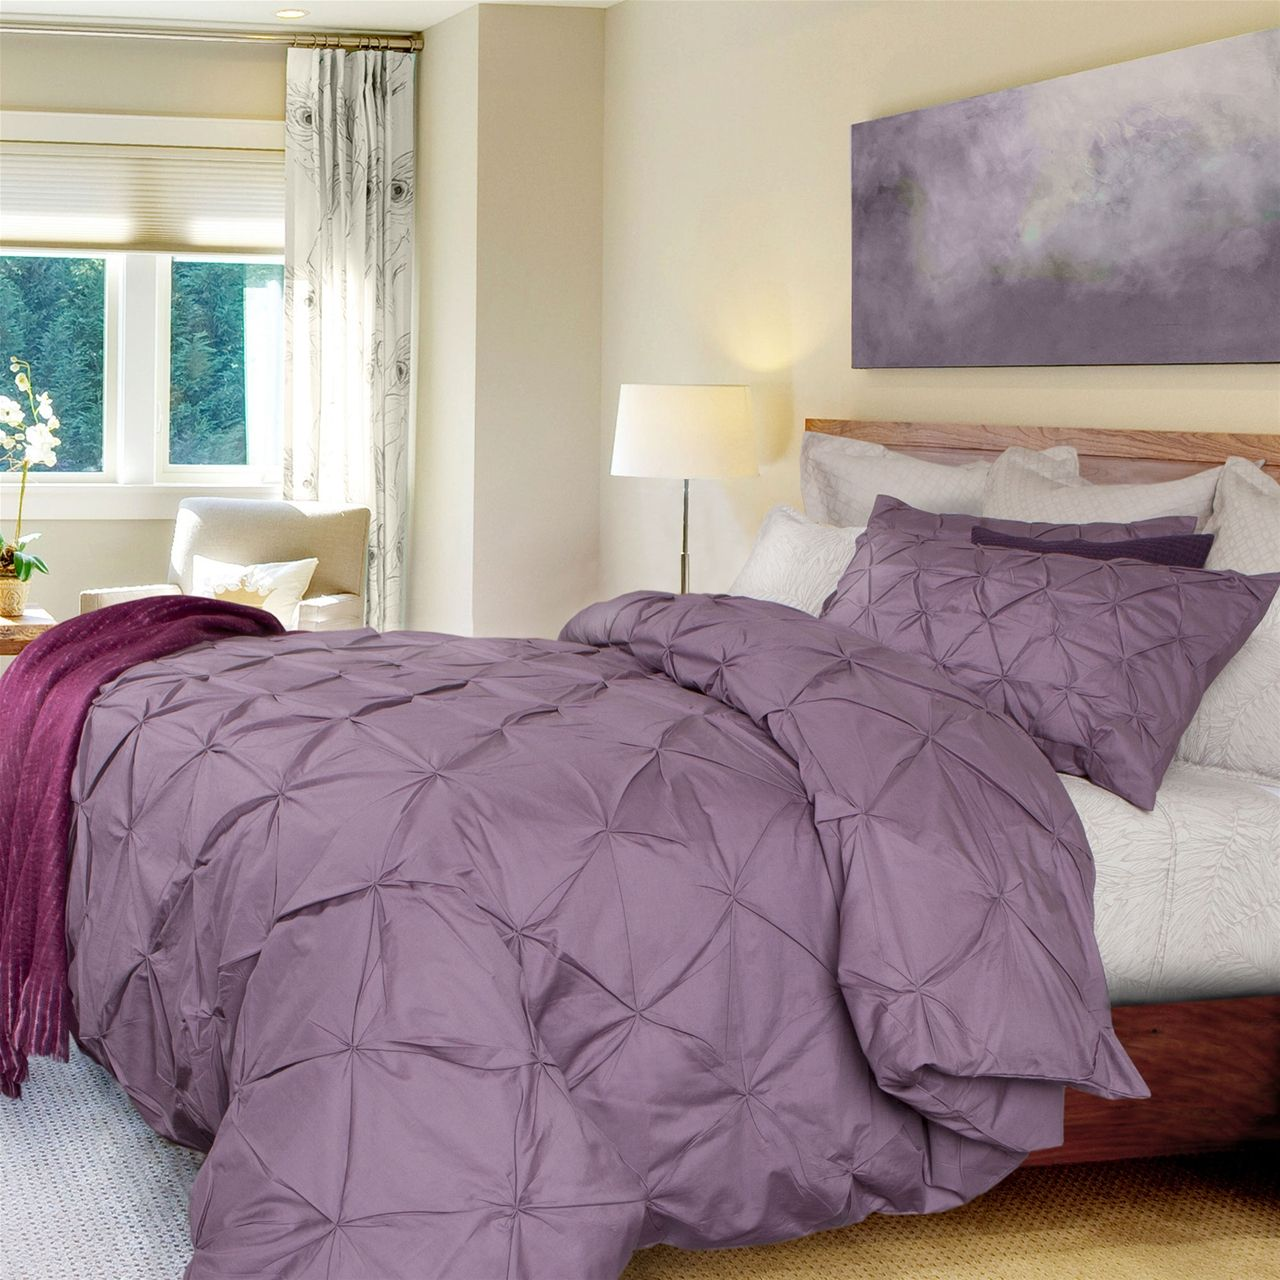 pintuck duvet cover set purple like a cloud floating on top of your bed